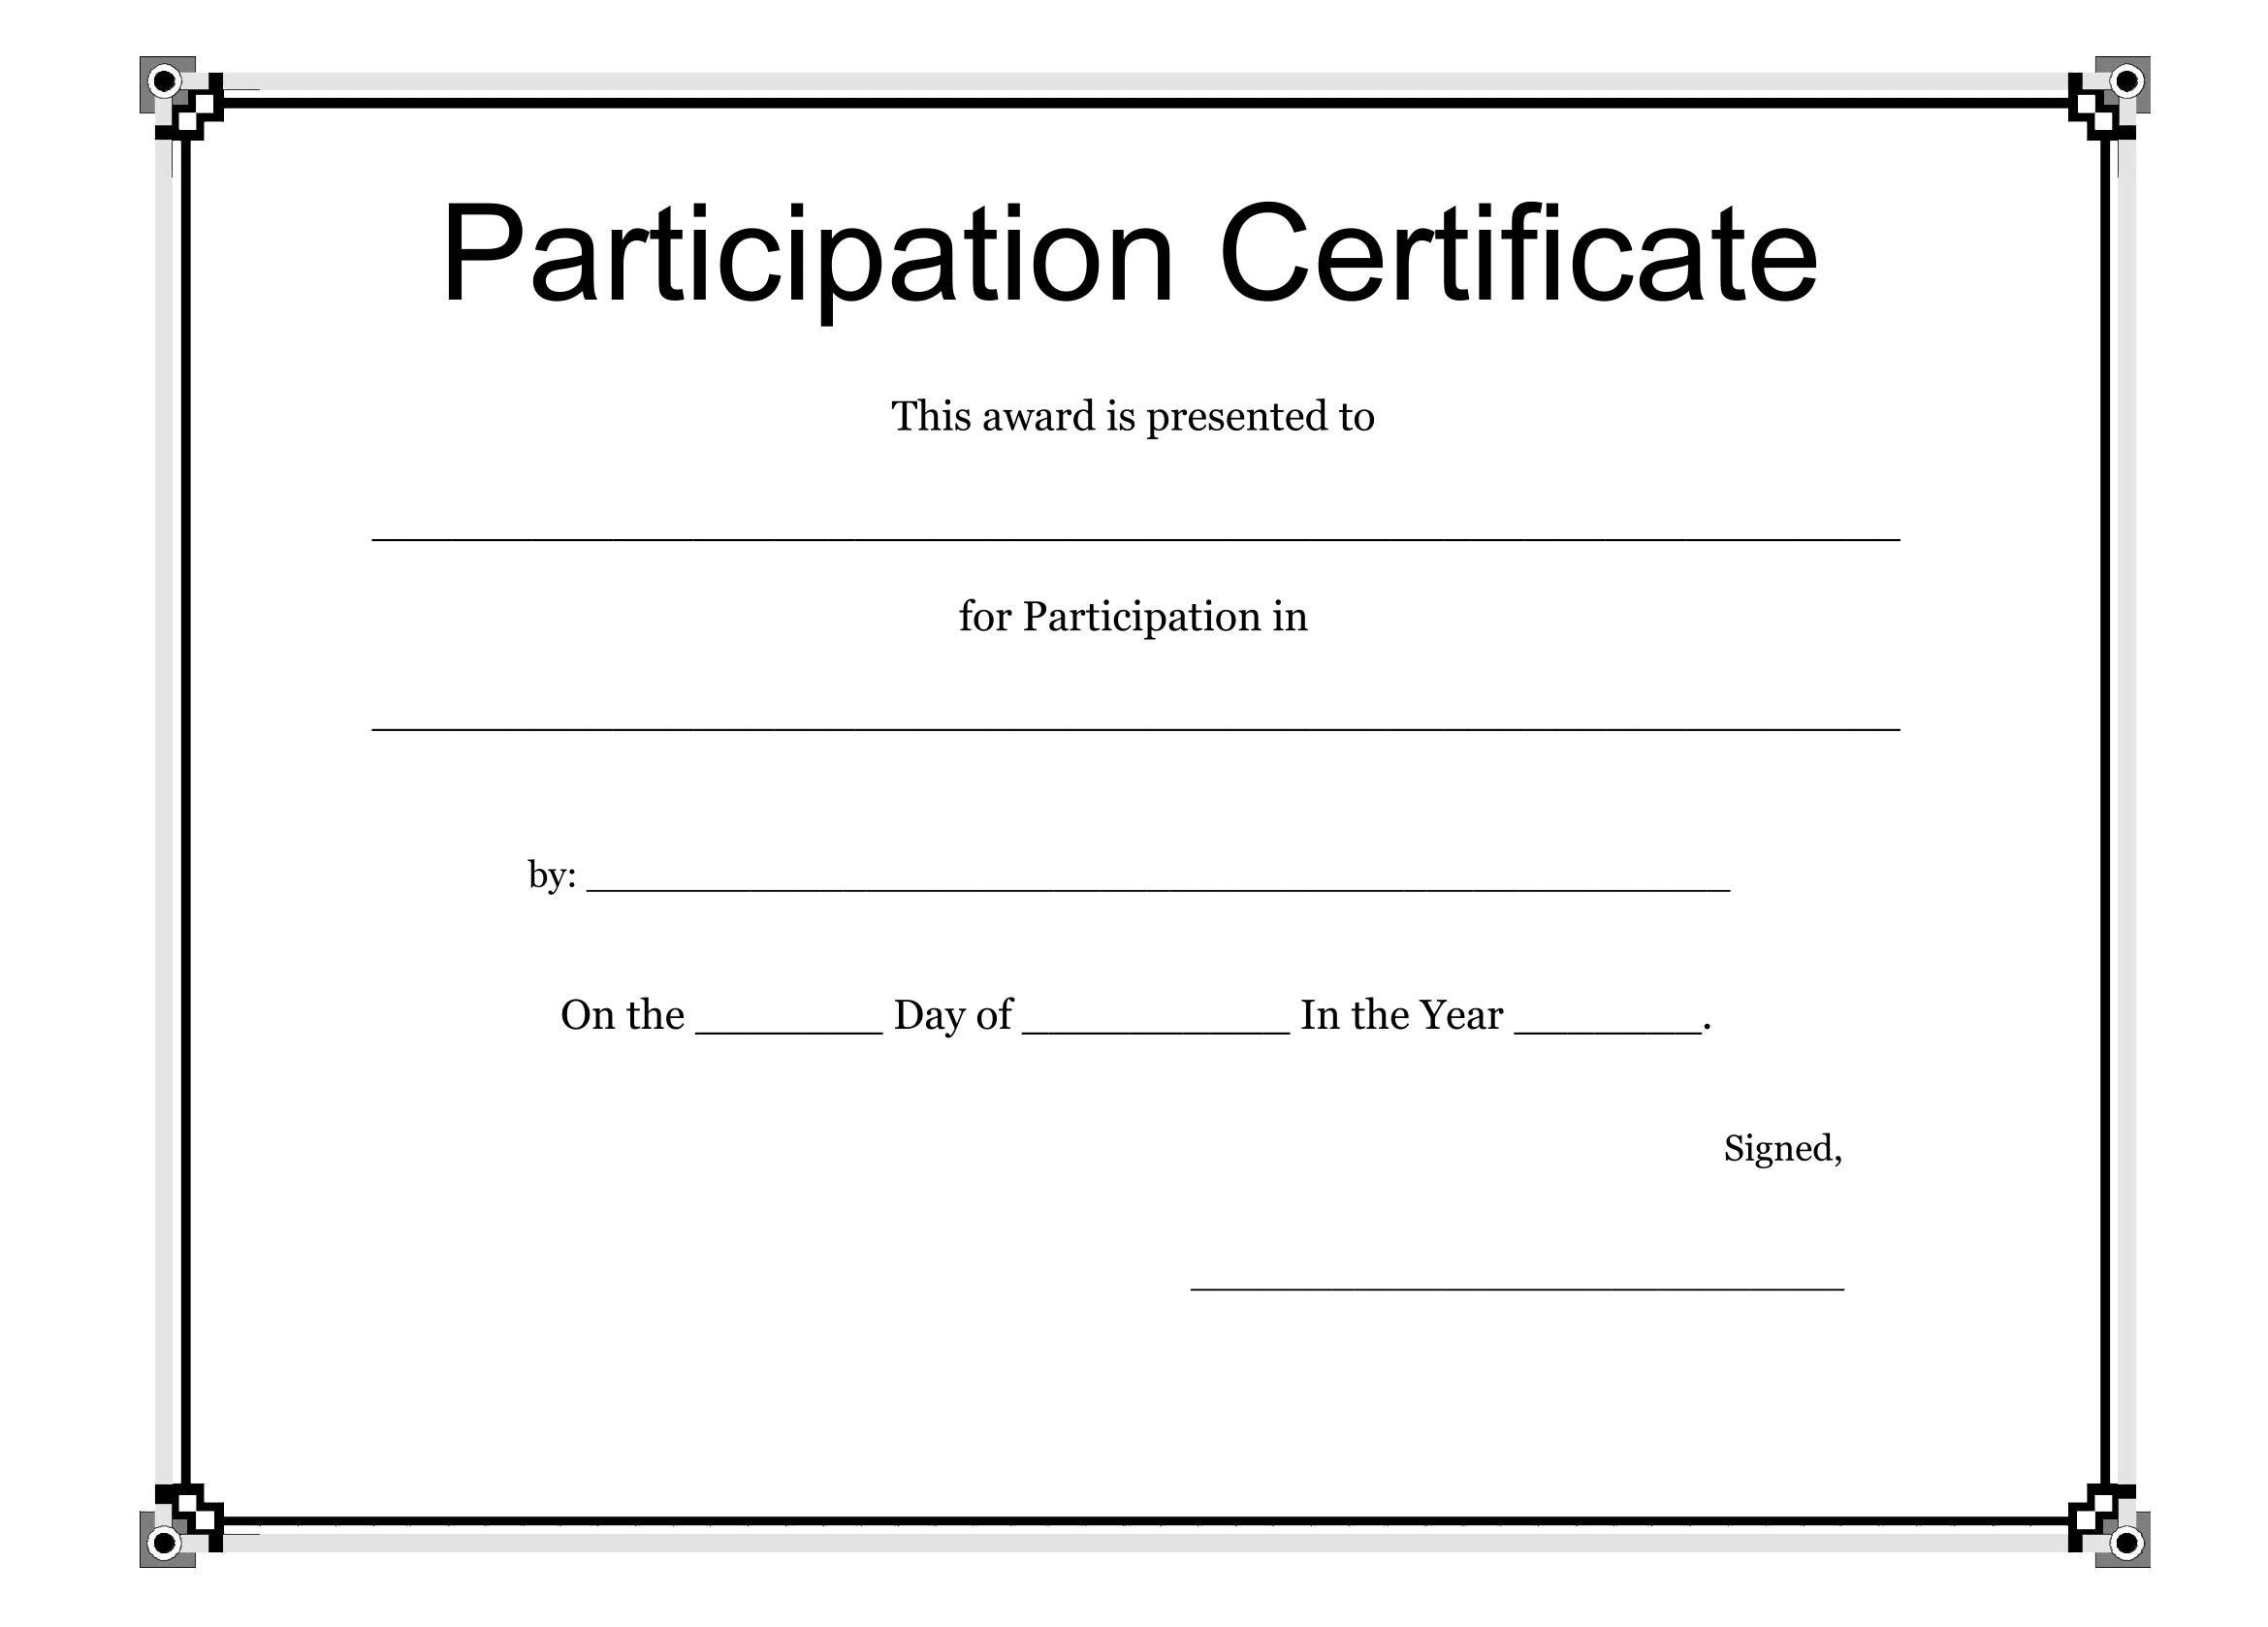 Participation certificate template free download for Free online certificate templates